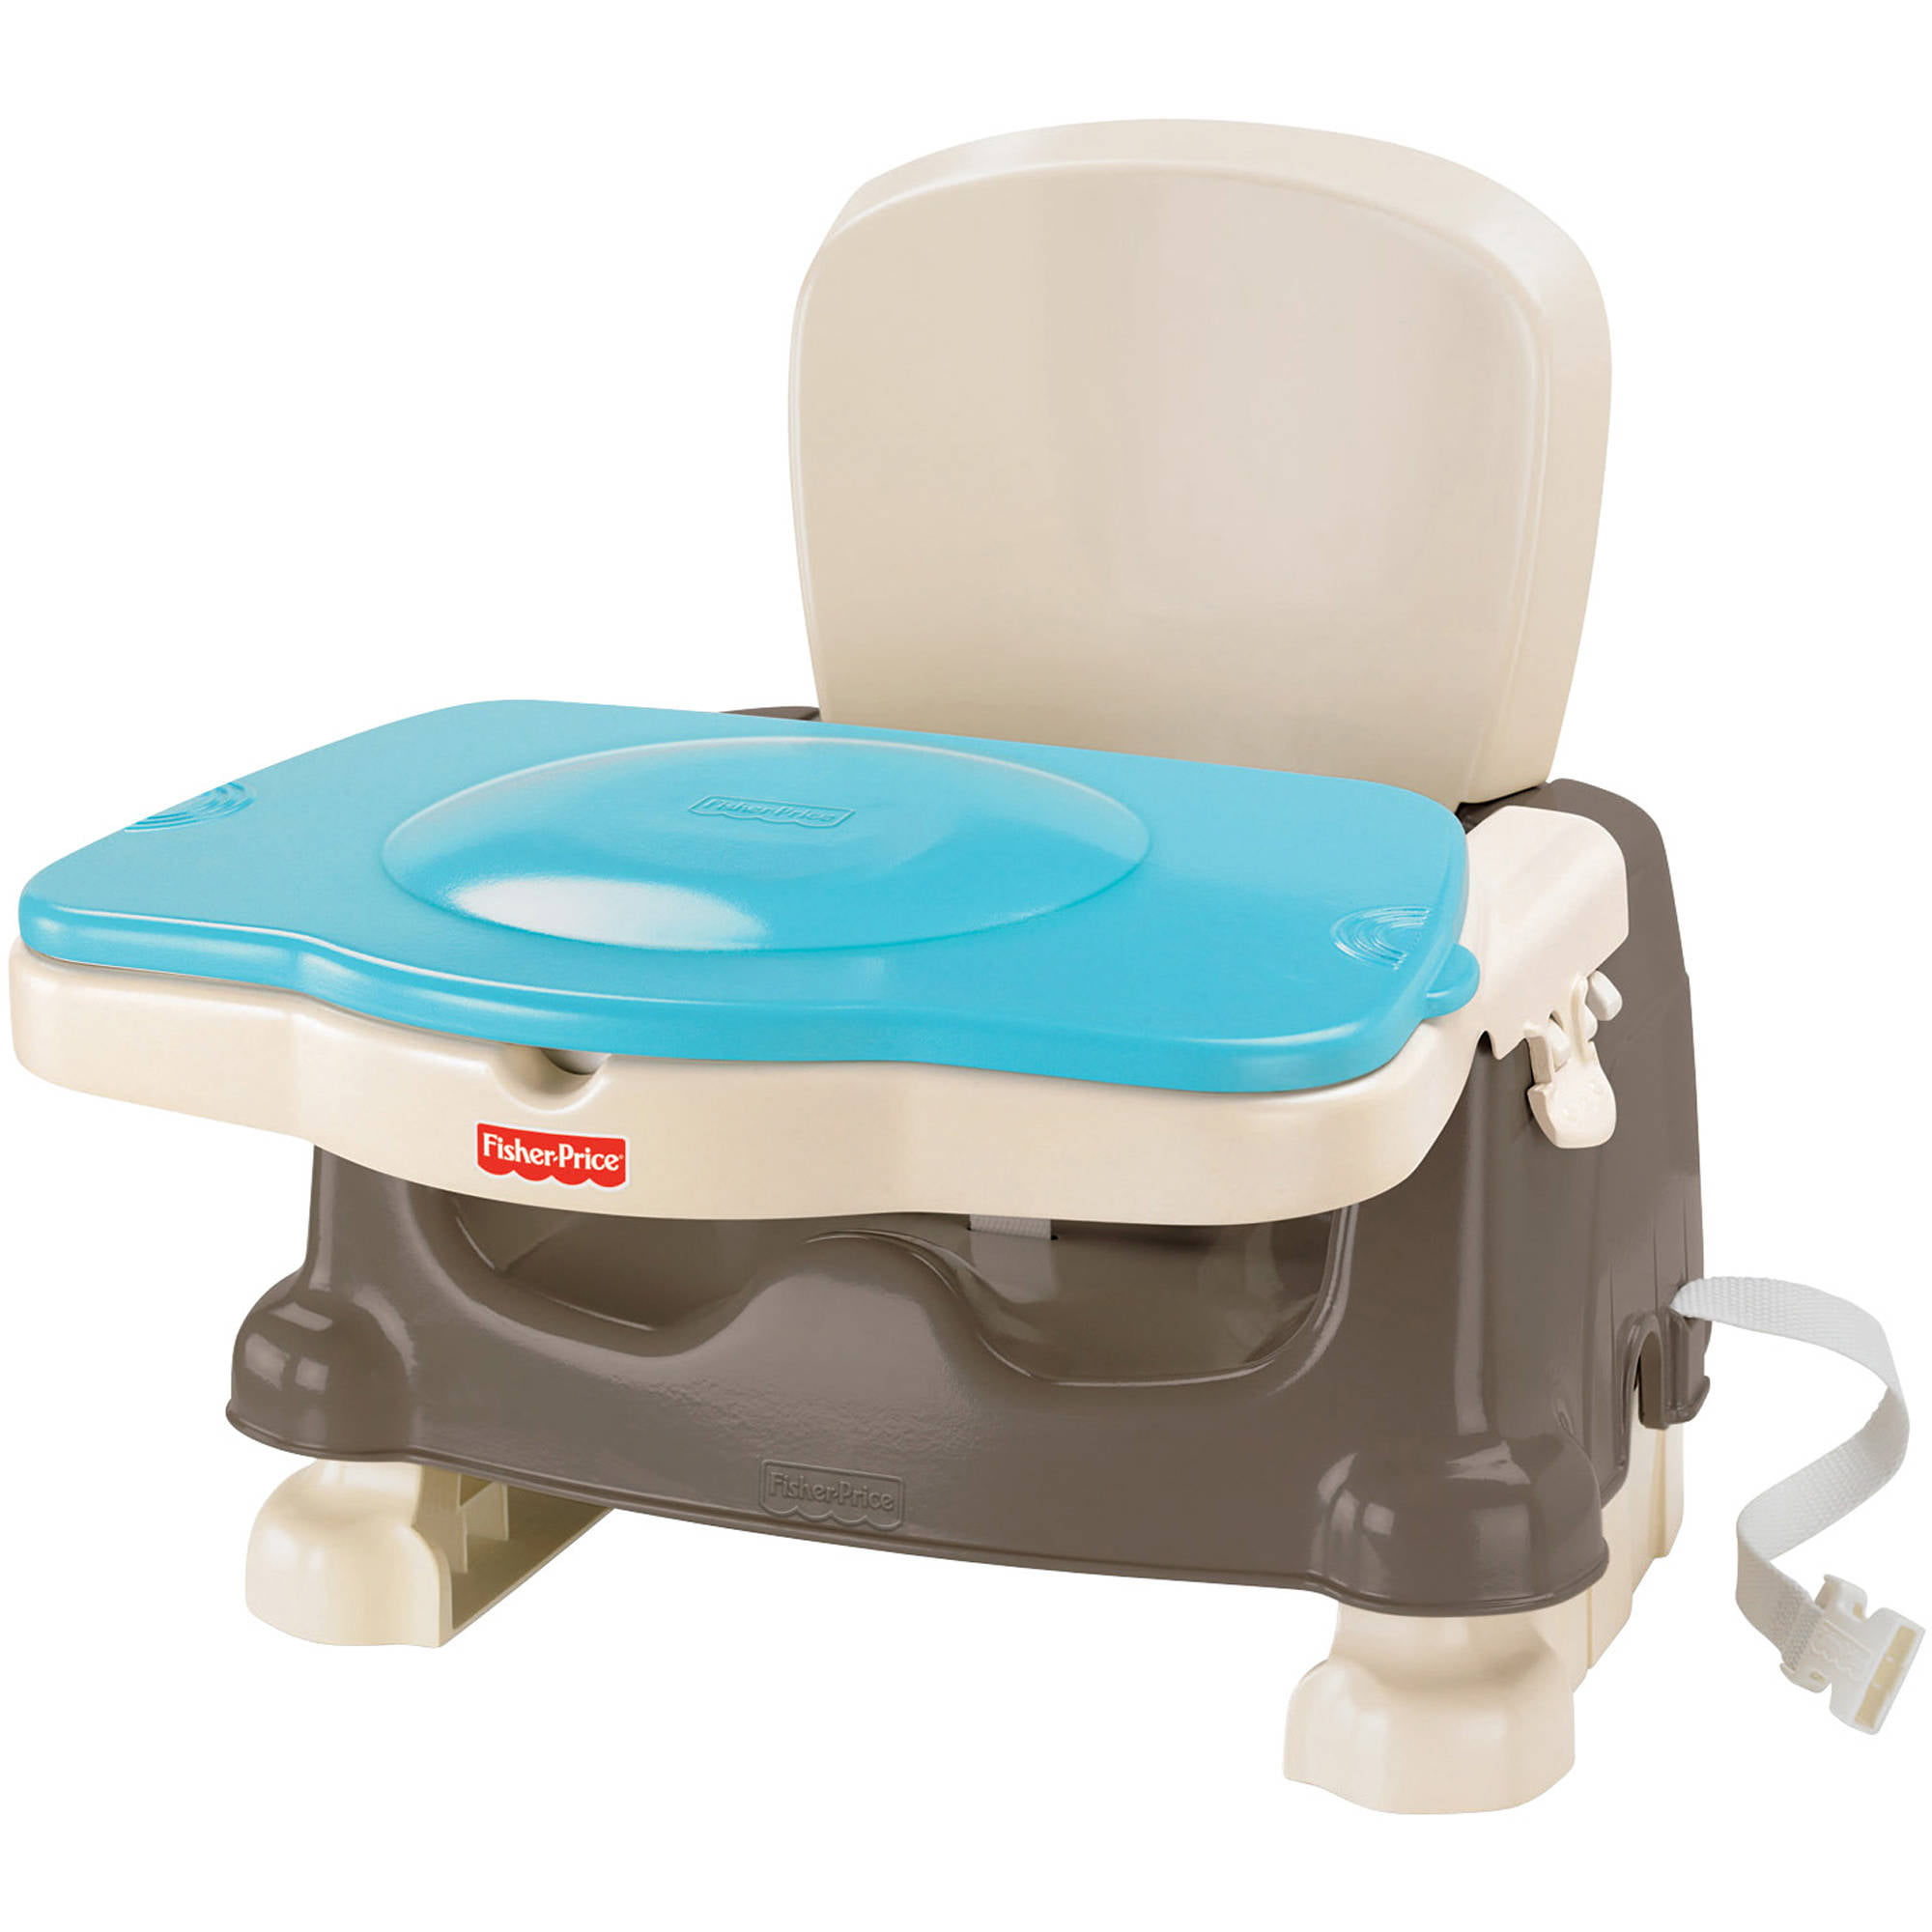 Baby bath chair walmart - Baby Bath Chair Walmart 57